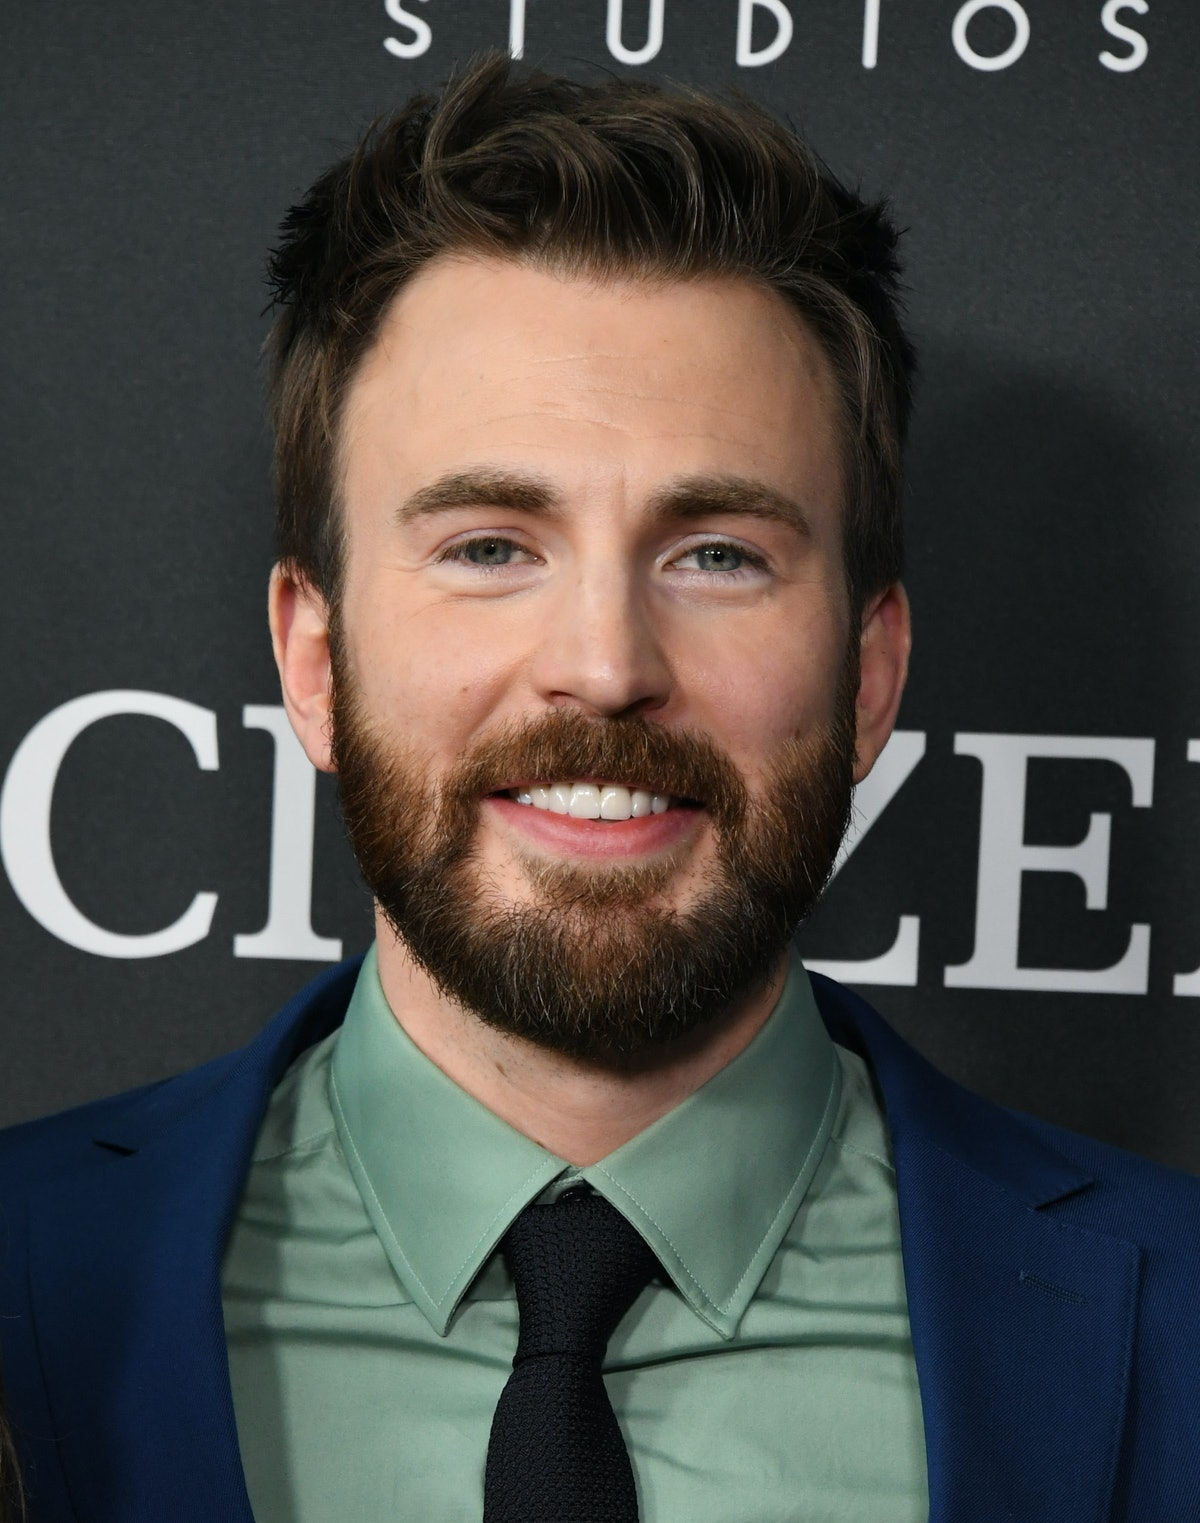 Lizzo's plan for a date with Chris Evans takes it to the next level.